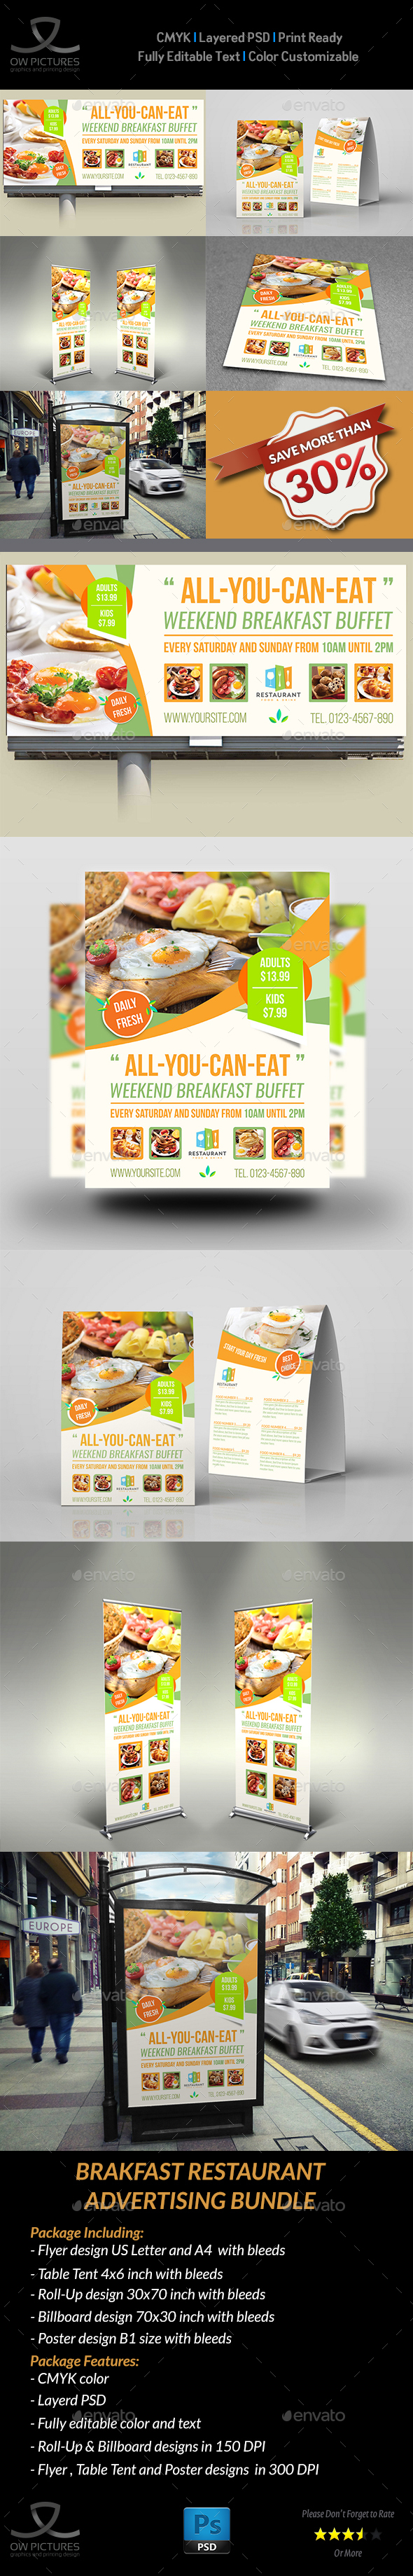 Breakfast Restaurant Advertising Bundle - Signage Print Templates